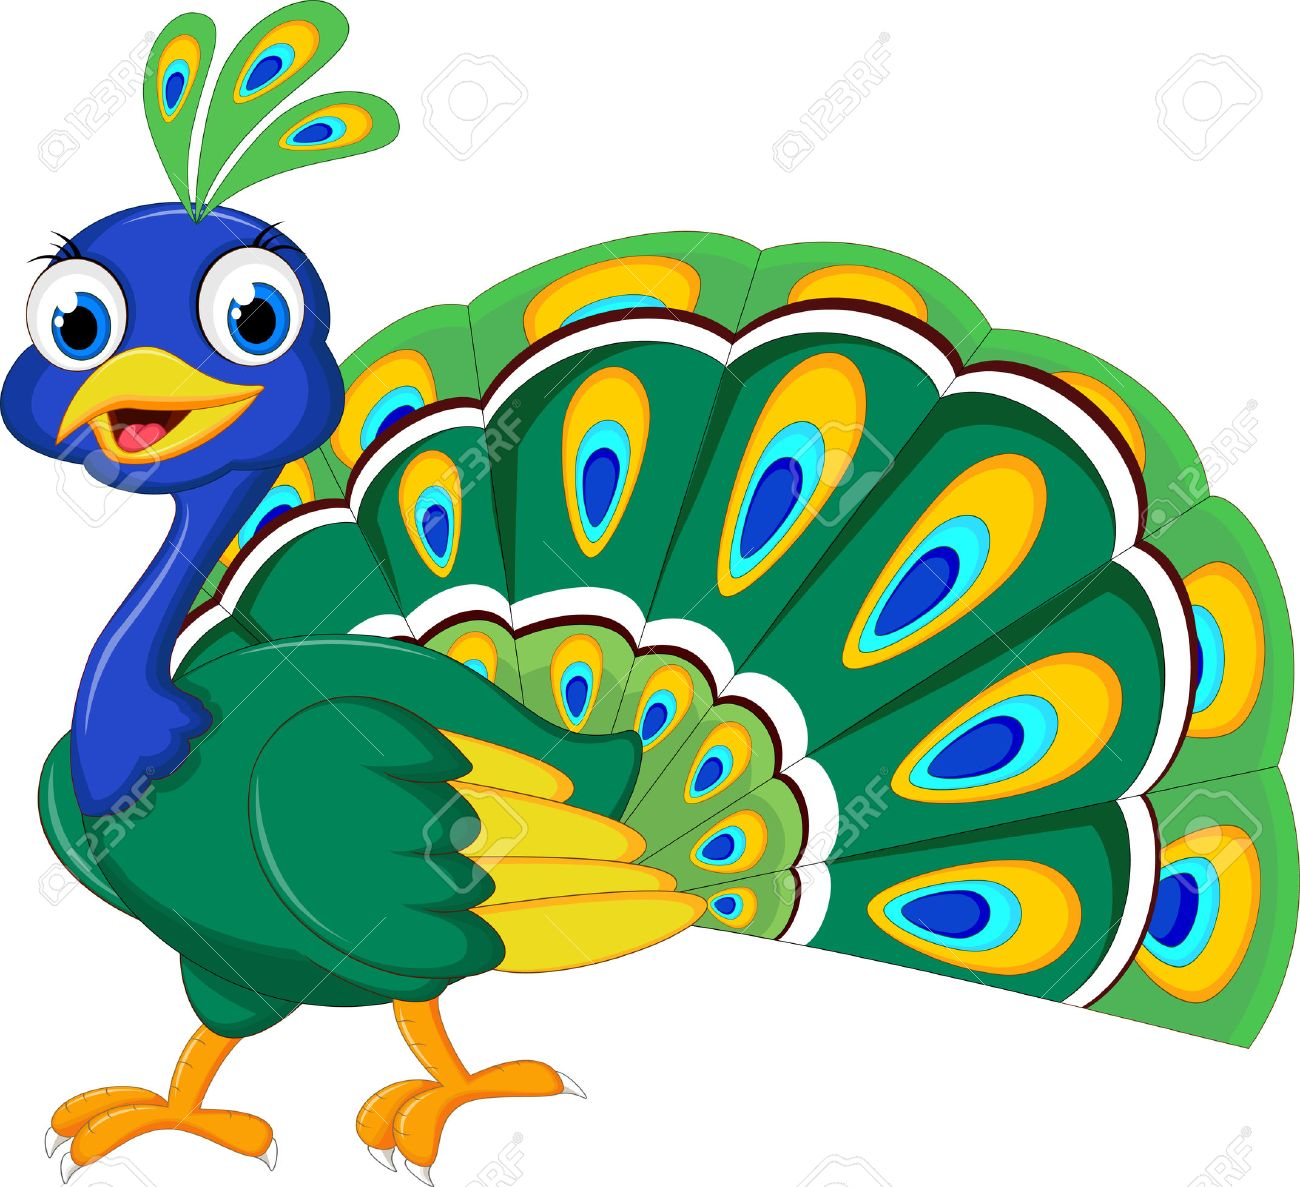 peacock cartoon for you design royalty free cliparts vectors and rh 123rf com cartoon peacock running cartoon peacock swimming